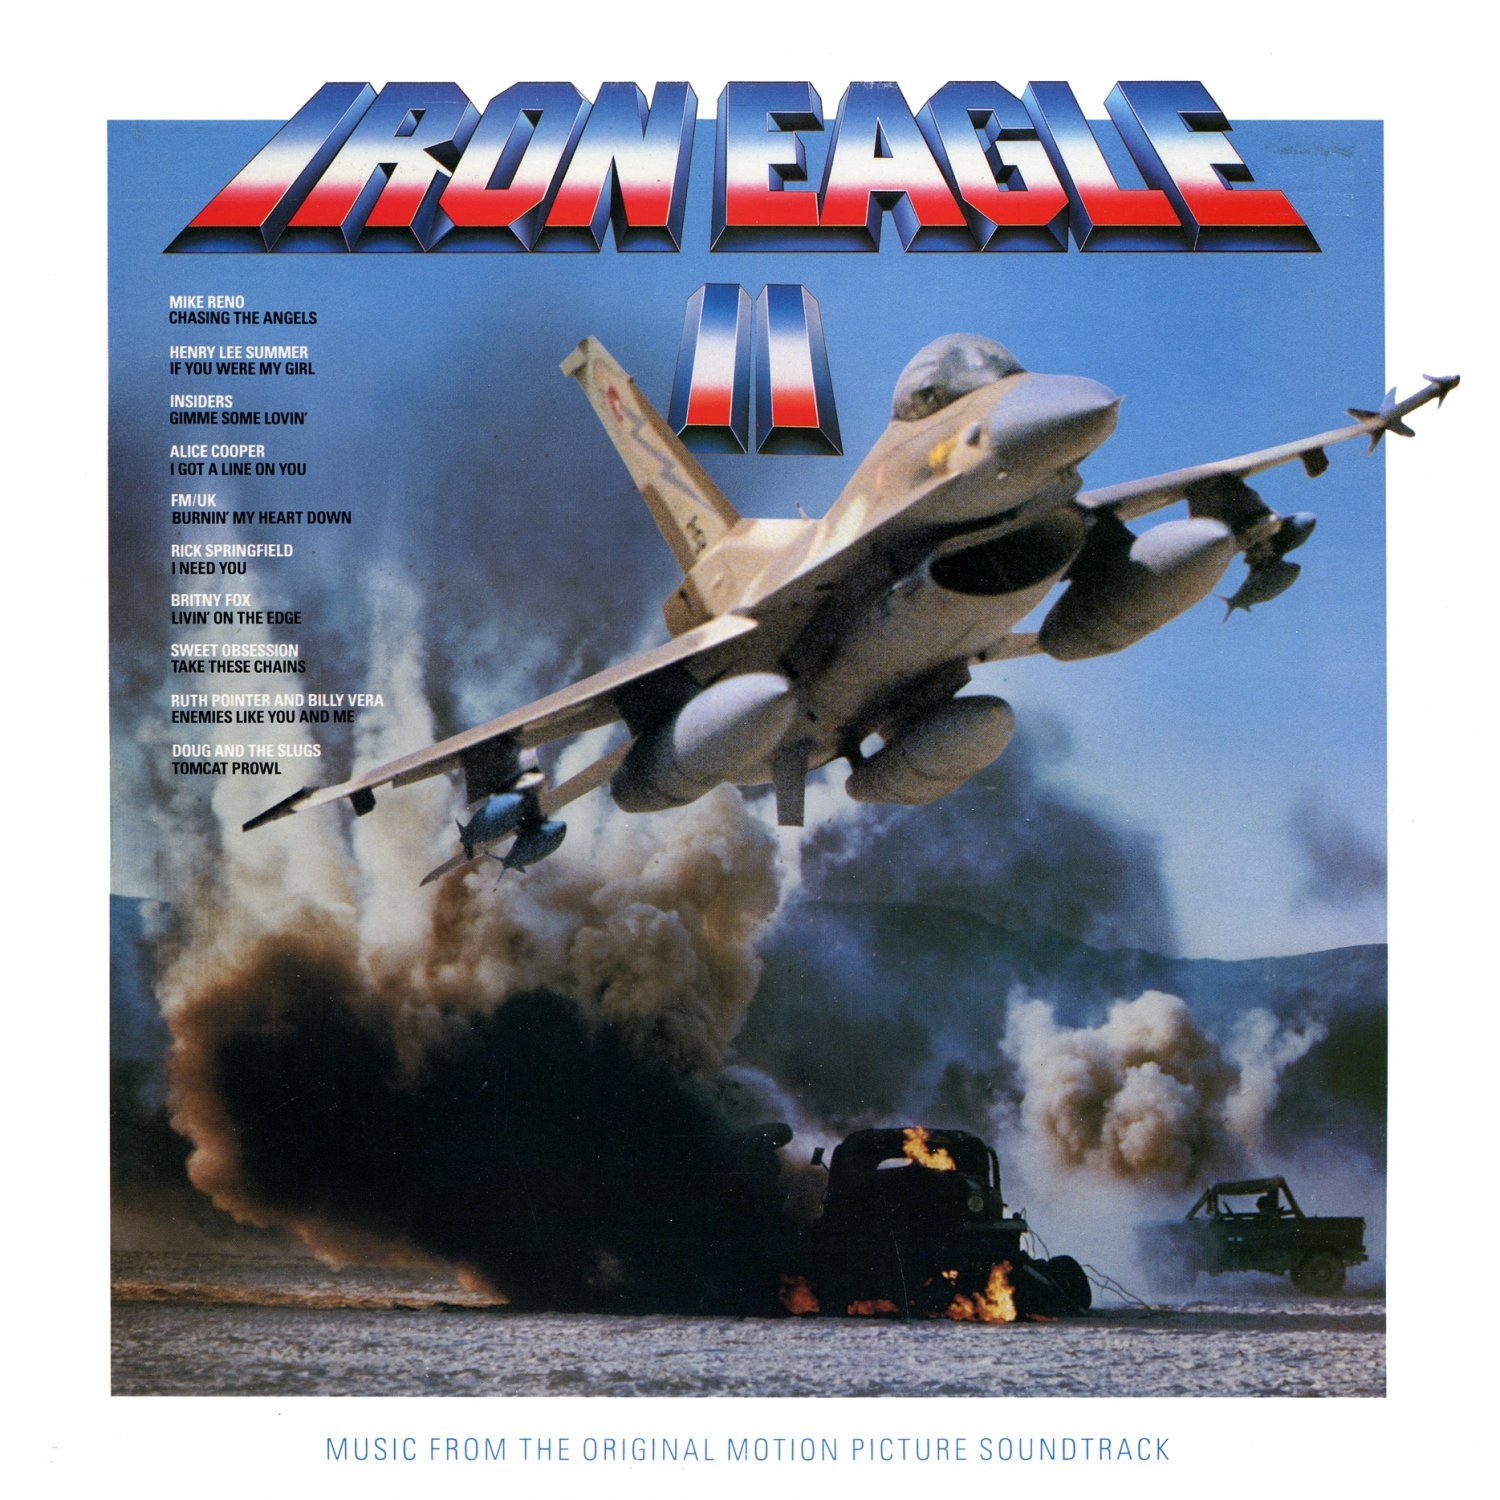 Iron Eagle II / 2 - Original Soundtrack, Mike Reno OST LP/CD